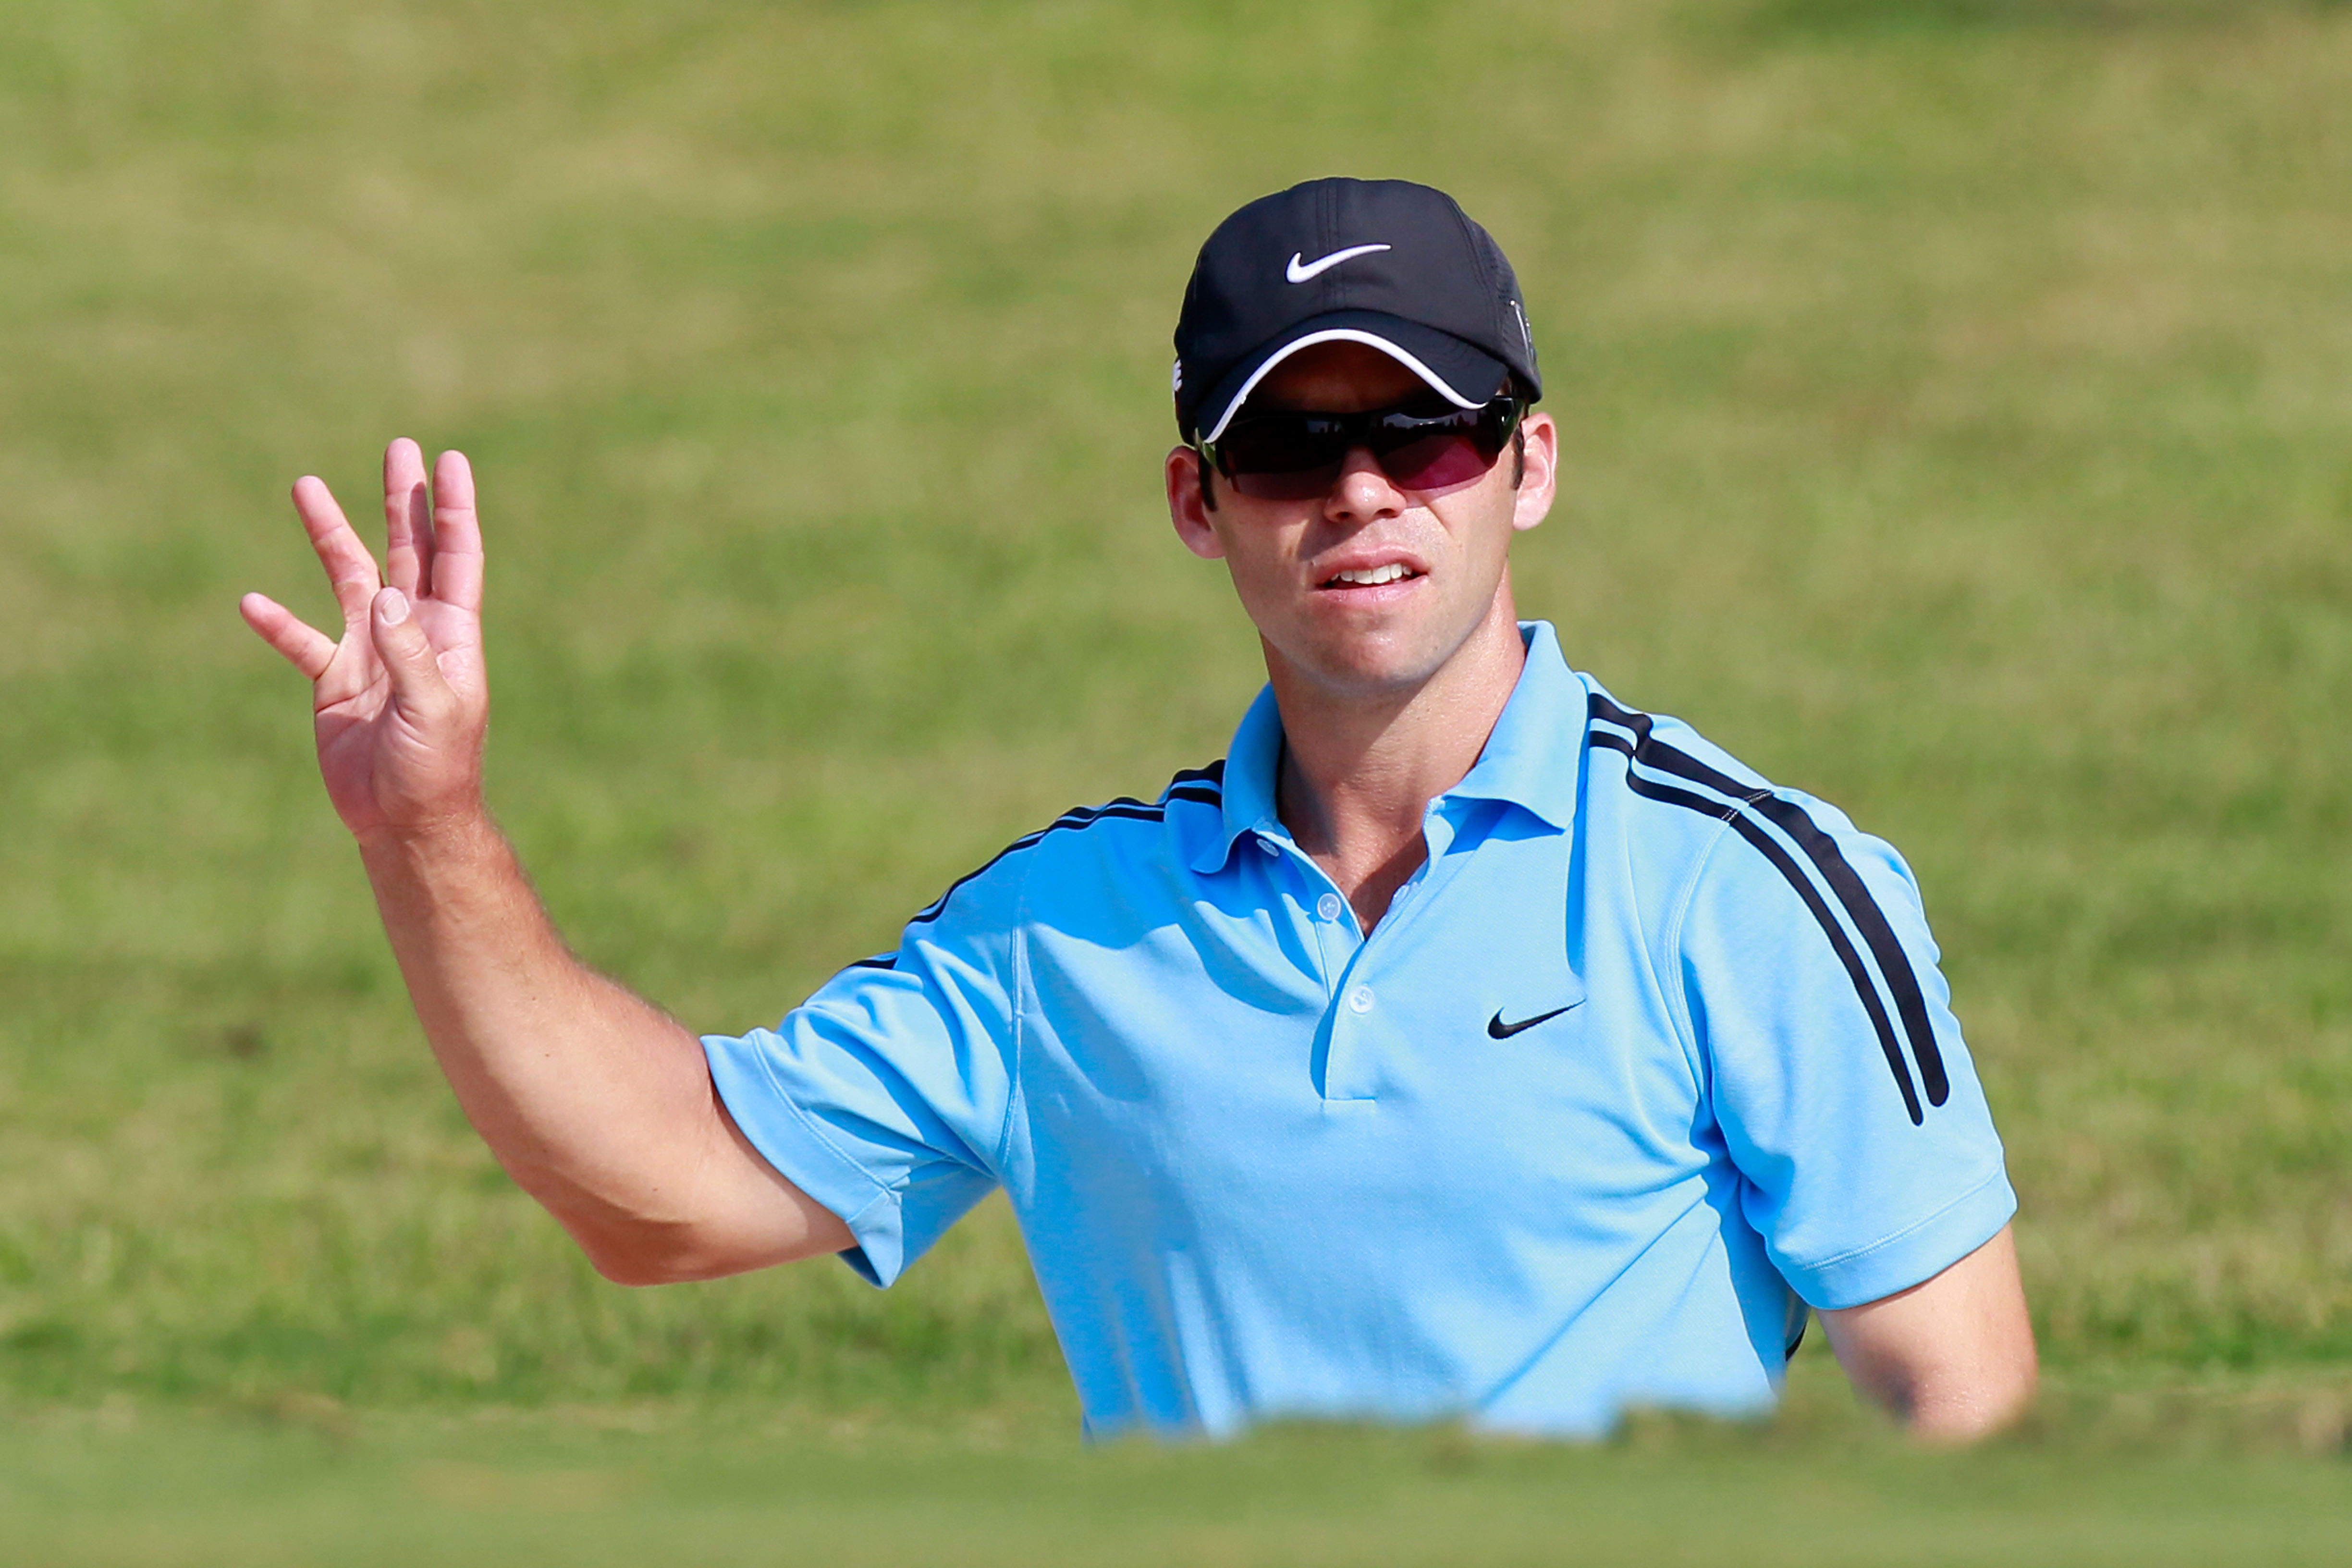 ATLANTA - SEPTEMBER 23:  Paul Casey of England reacts after his sand shot on the 14th green during the first round of THE TOUR Championship presented by Coca-Cola at East Lake Golf Club on September 23, 2010 in Atlanta, Georgia.  (Photo by Kevin C. Cox/Ge